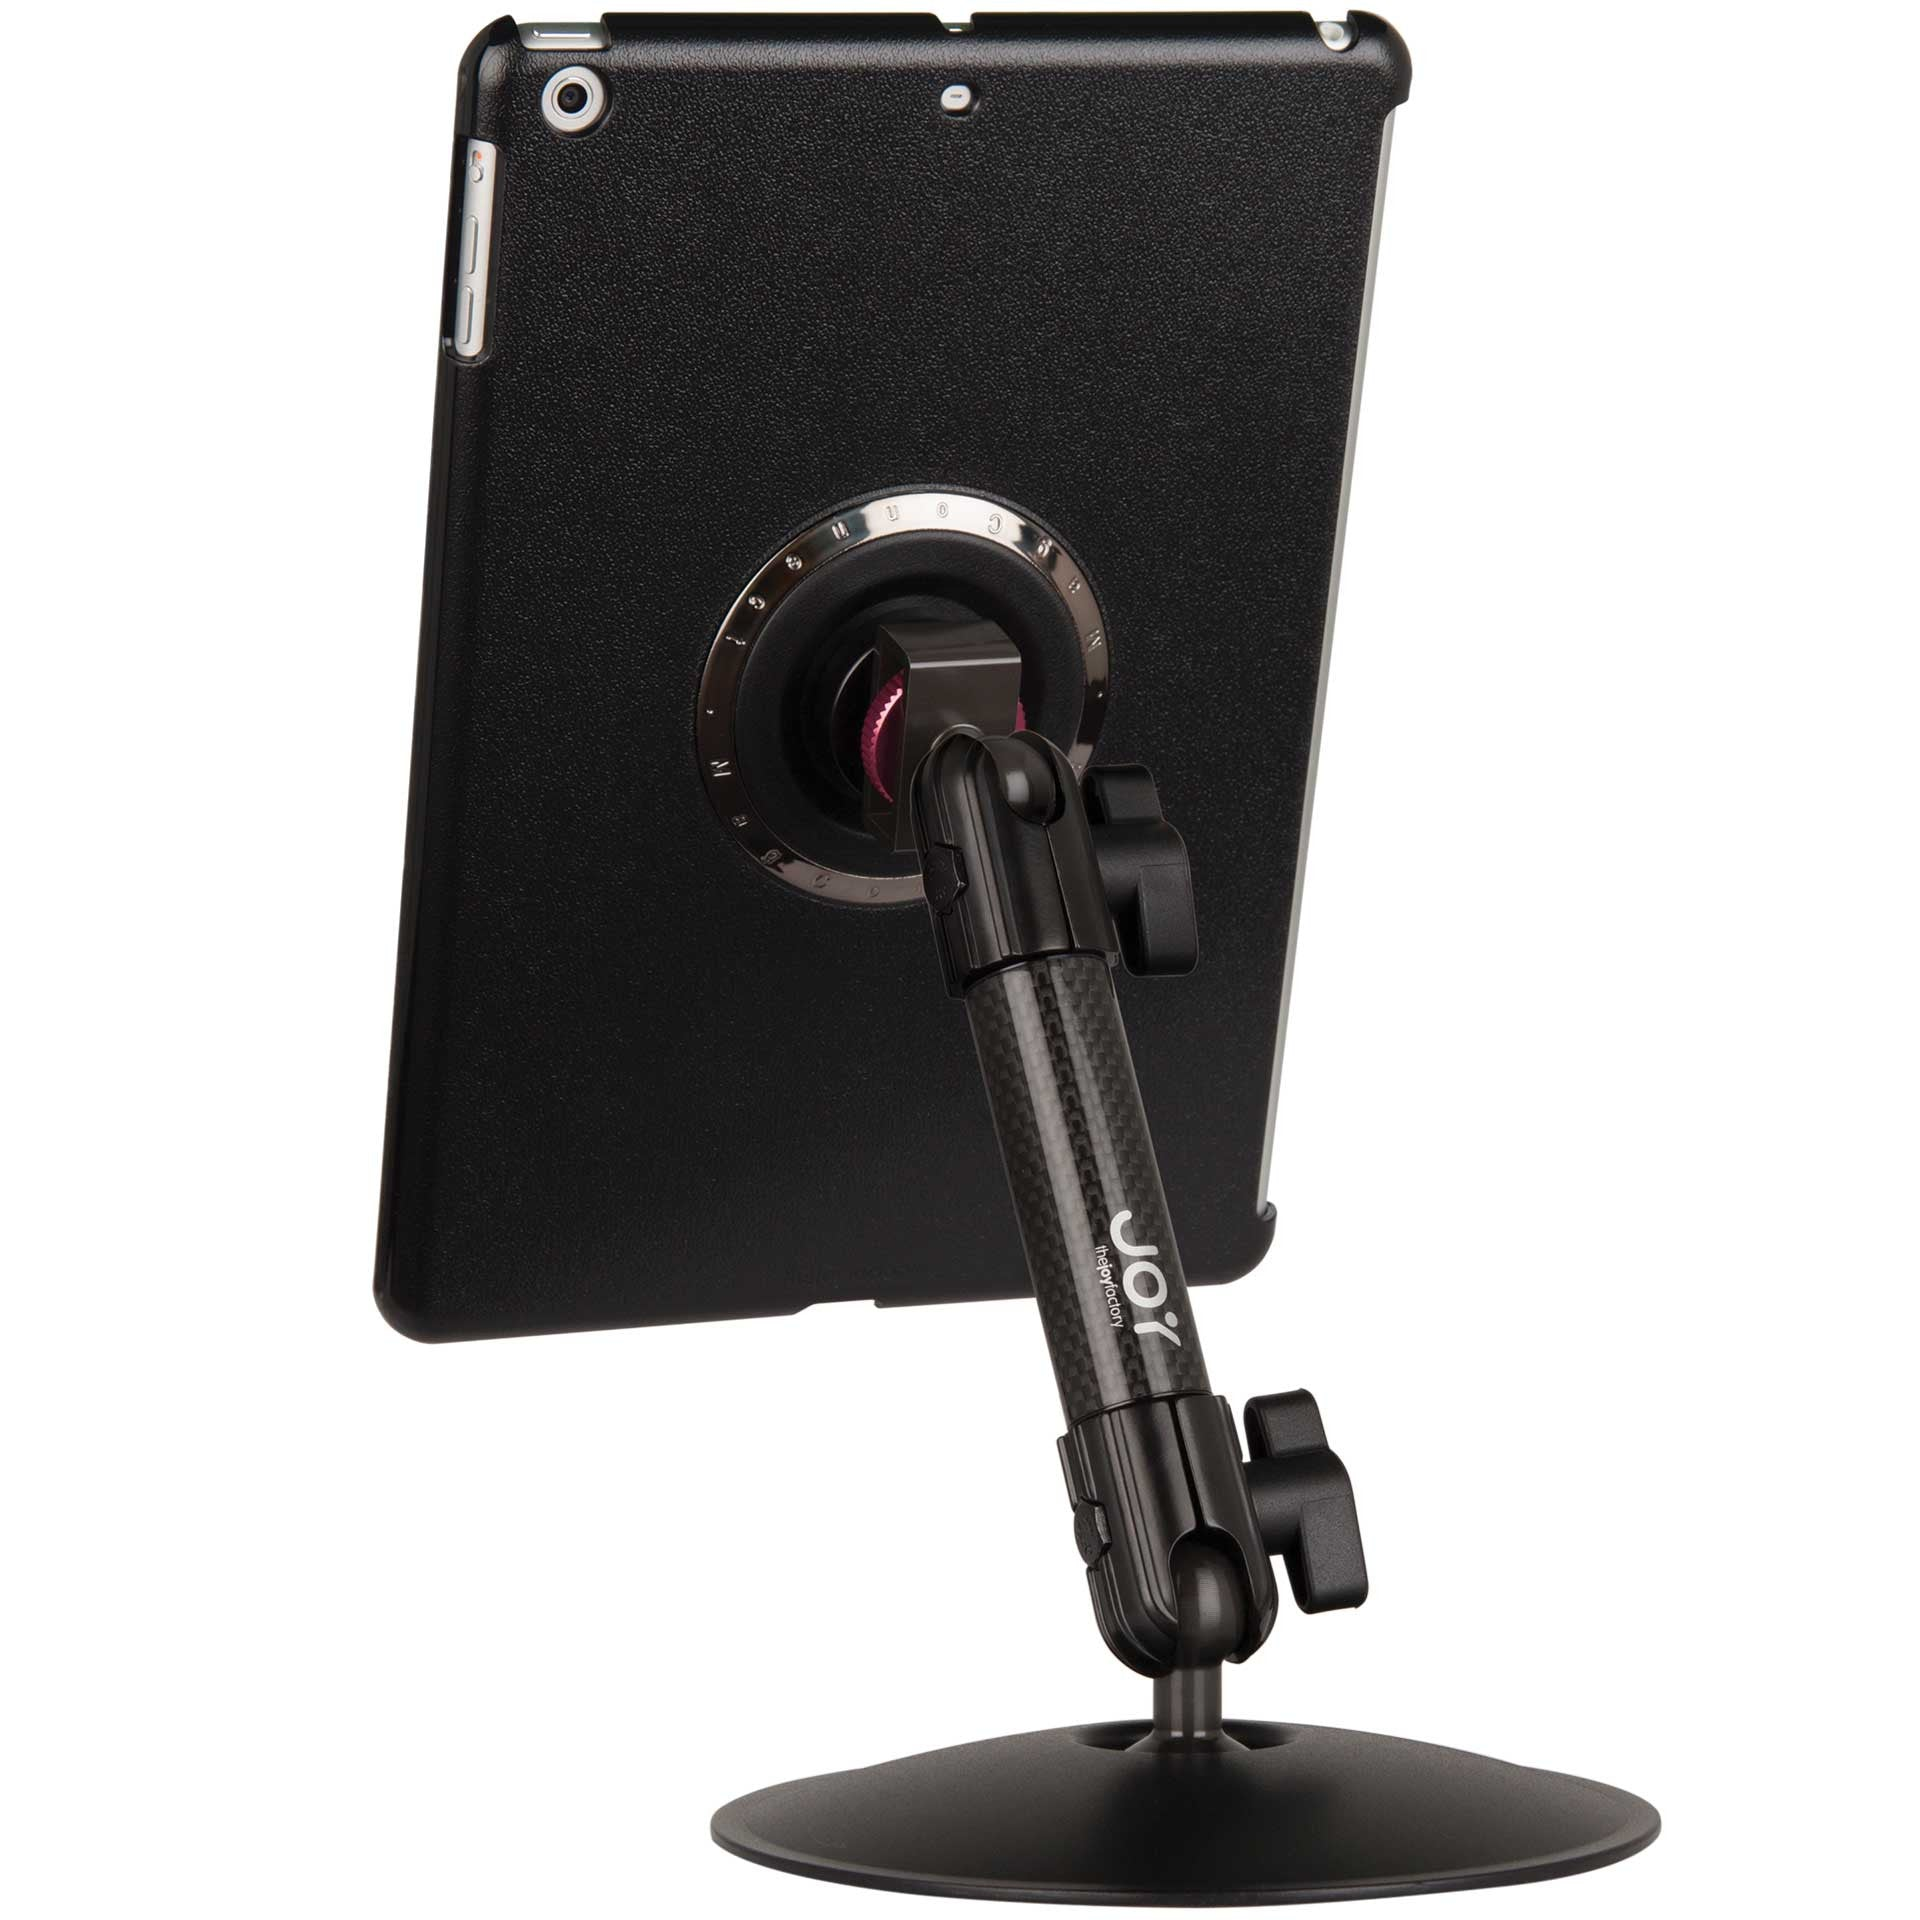 iPad Desk Stand for iPad Air with MagConnect Standard Tray